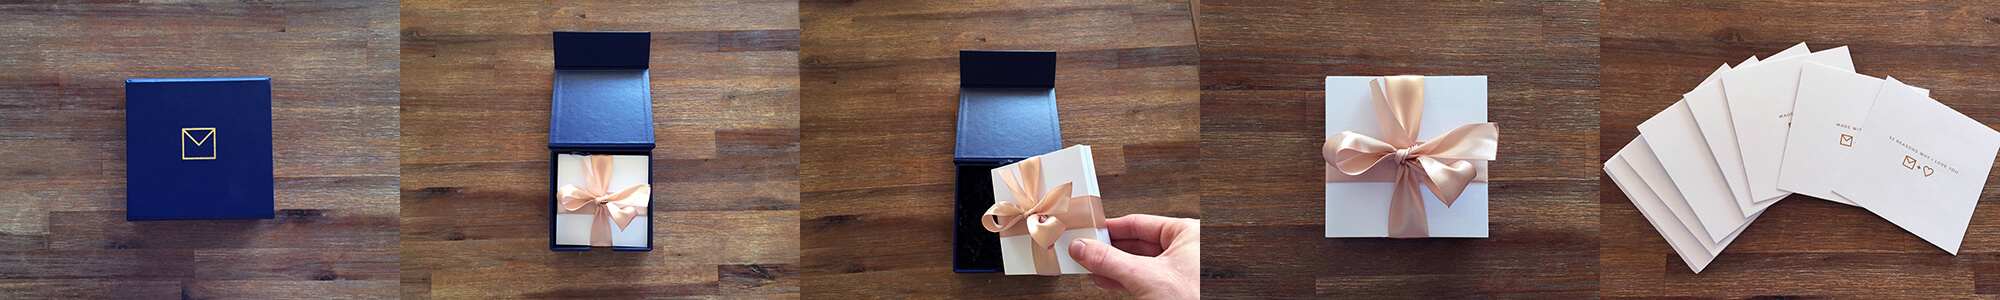 NoteCube is made from beautiful materials to ensure a beautiful gift.